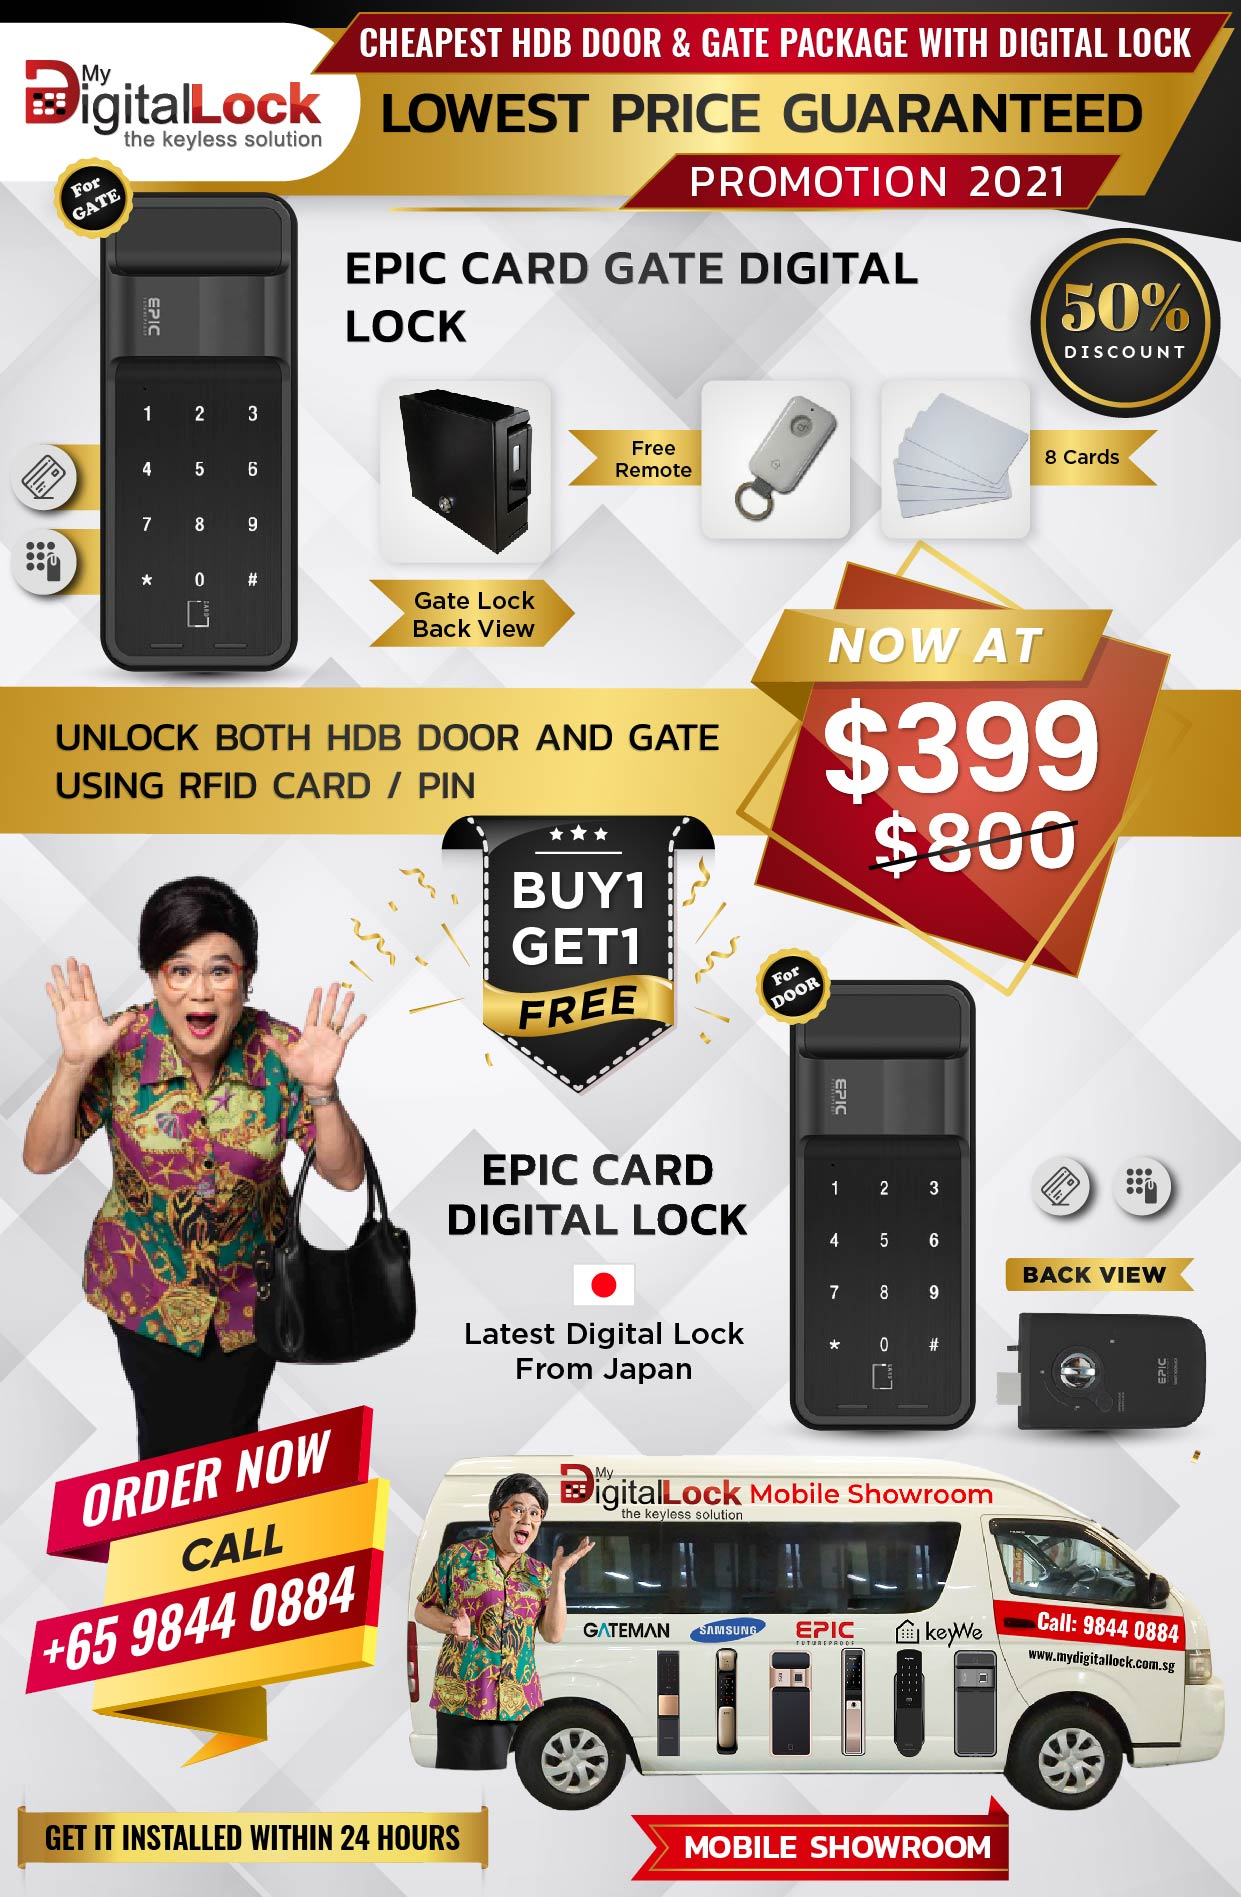 Epic Card Gate Digital Lock unlock both HDB Door and Gate using RFID cardPin